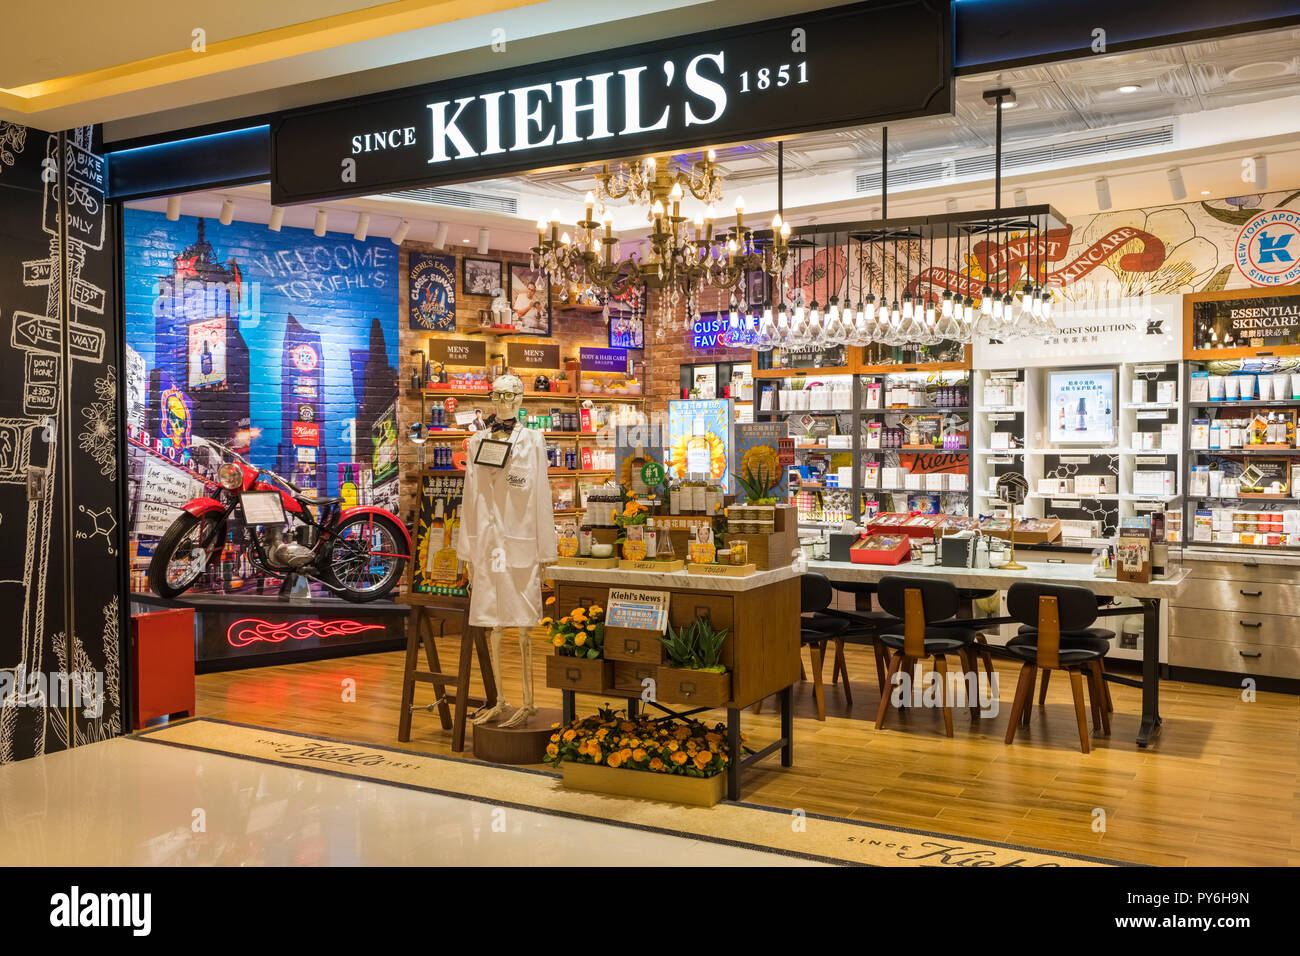 Kiehls store a Shanghai in Cina, Asia Immagini Stock